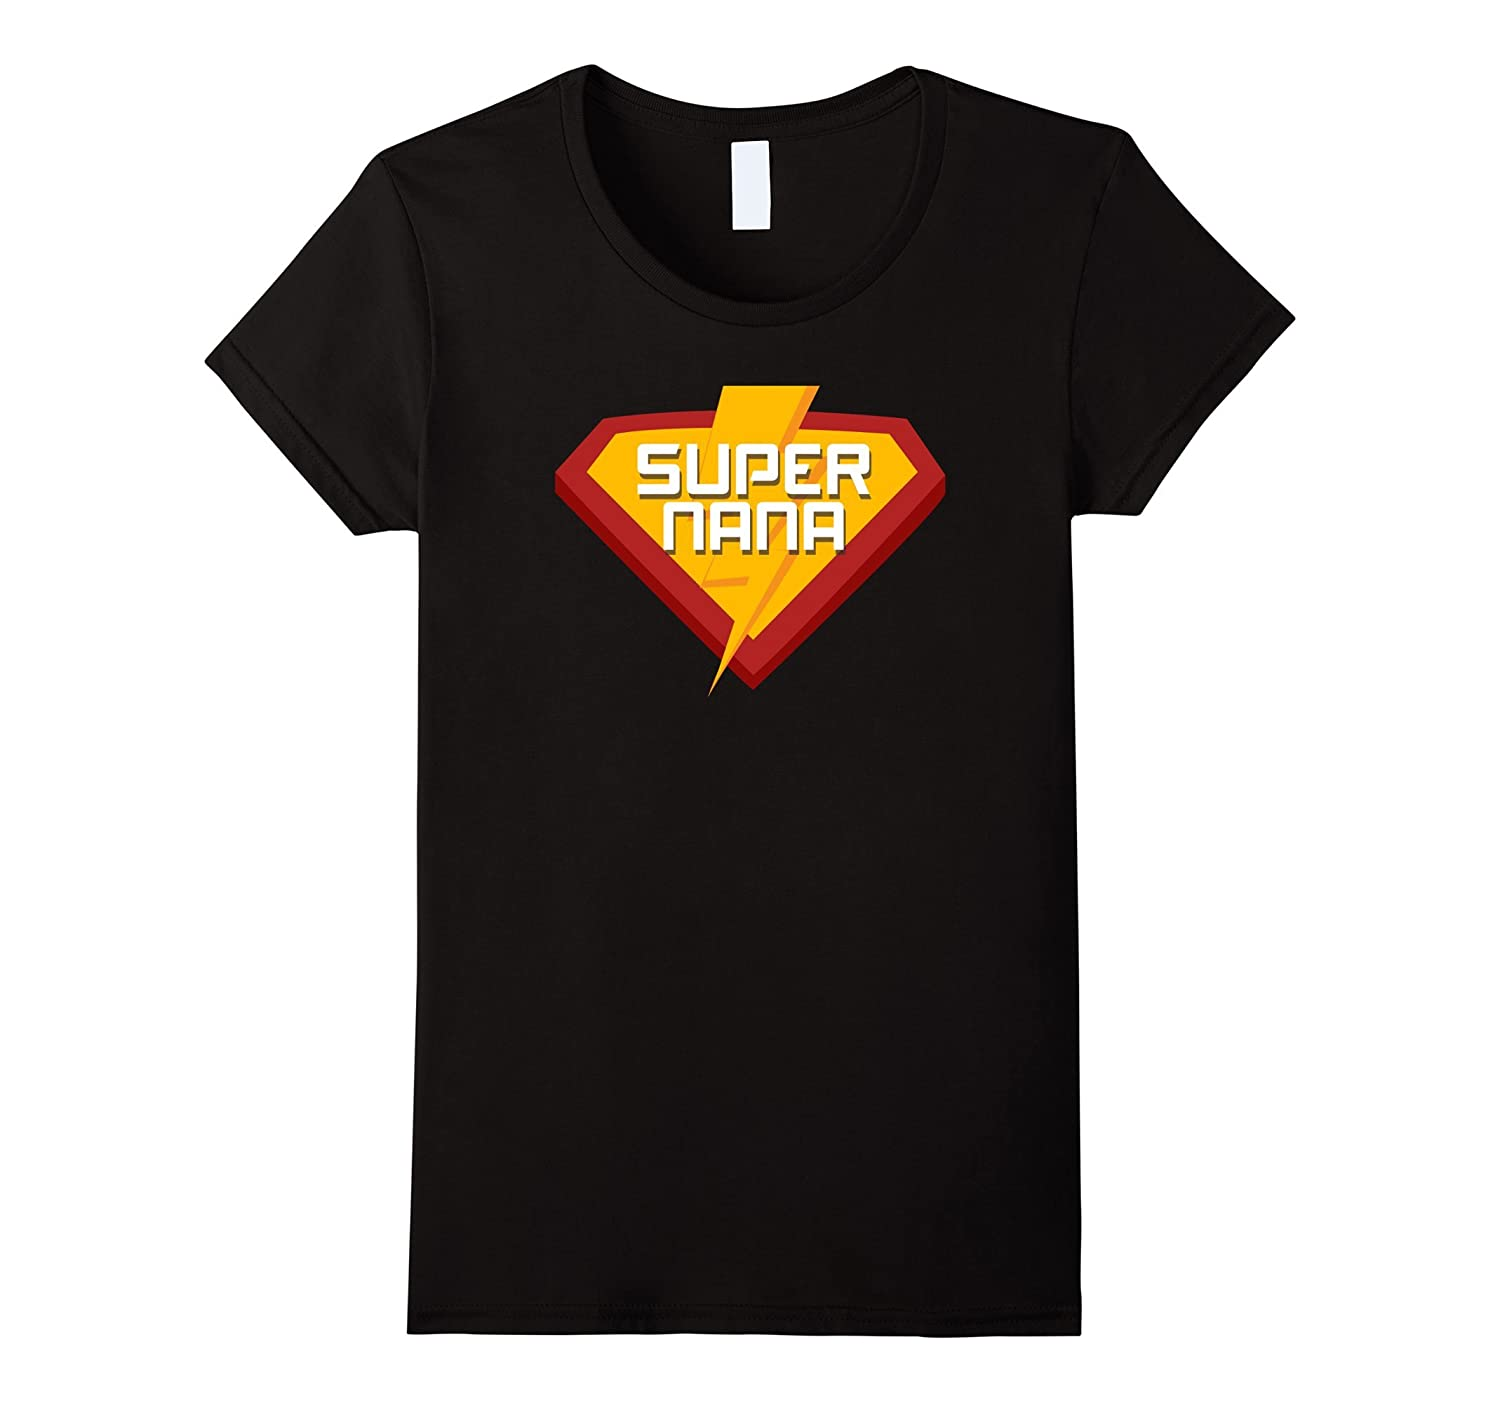 Super hero SUPER NANA T Shirt for Men Women Funny Costume-Teevkd